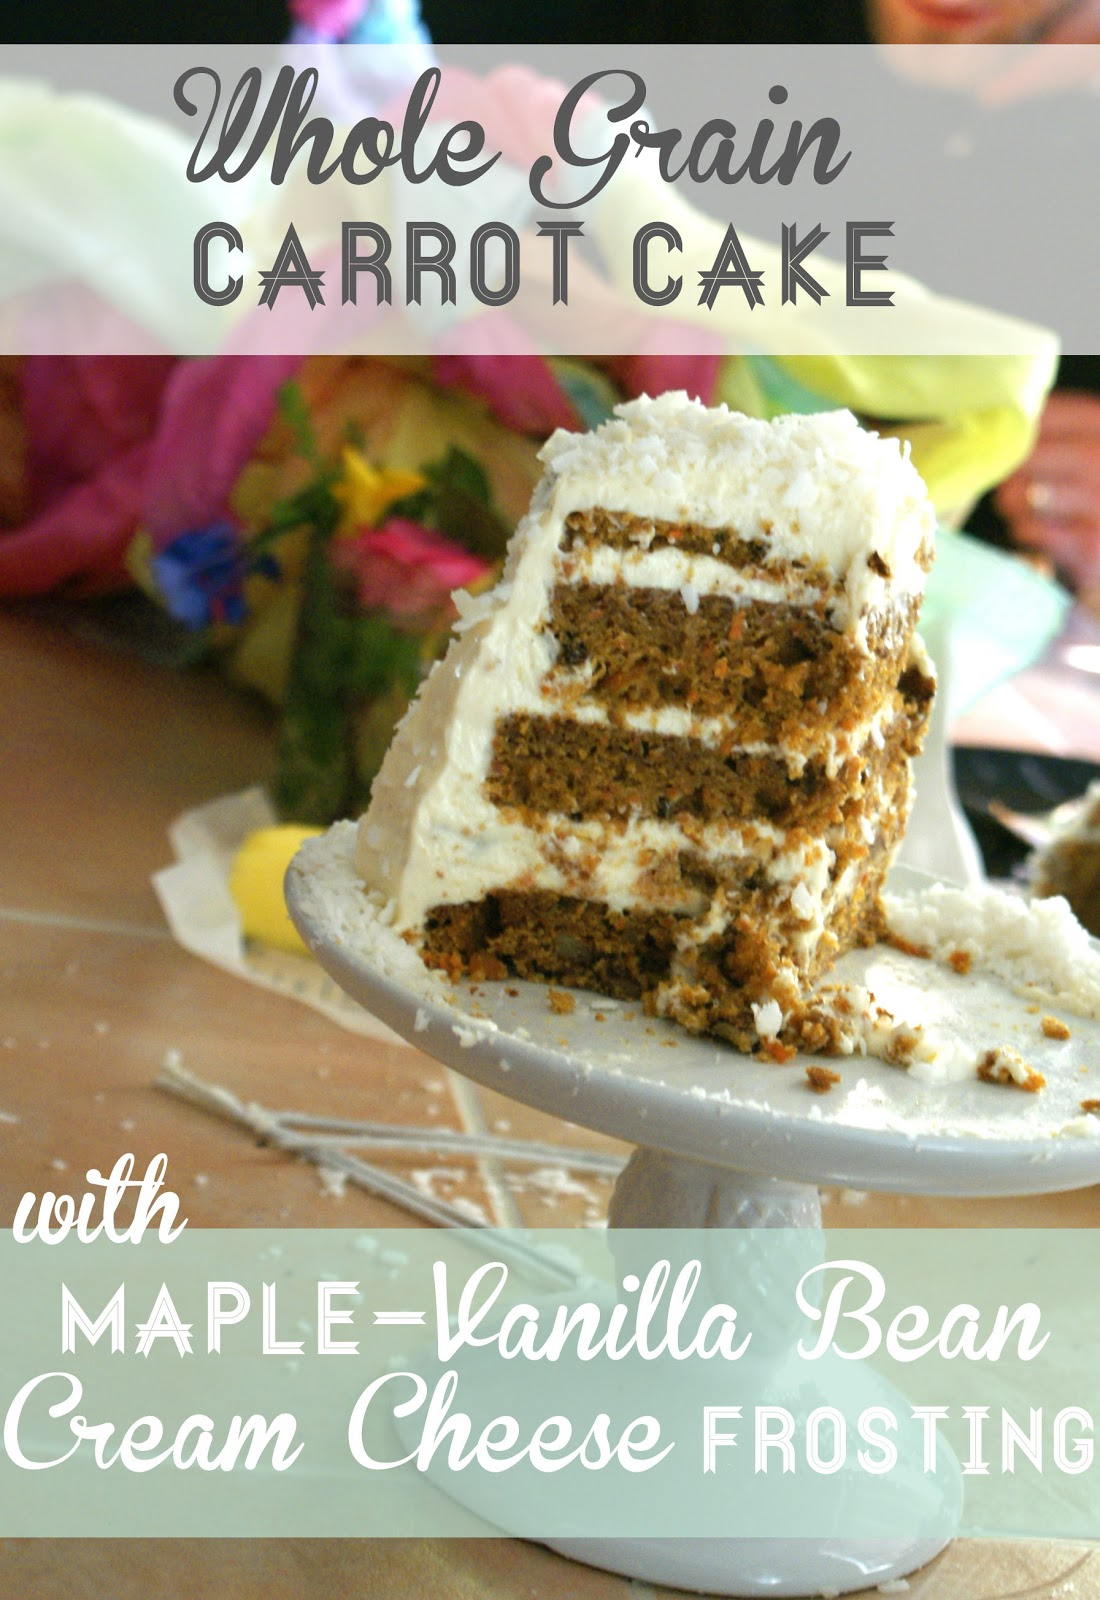 ... Carrot Cake with Maple-Vanilla Bean Cream Cheese Frosting {No Refined